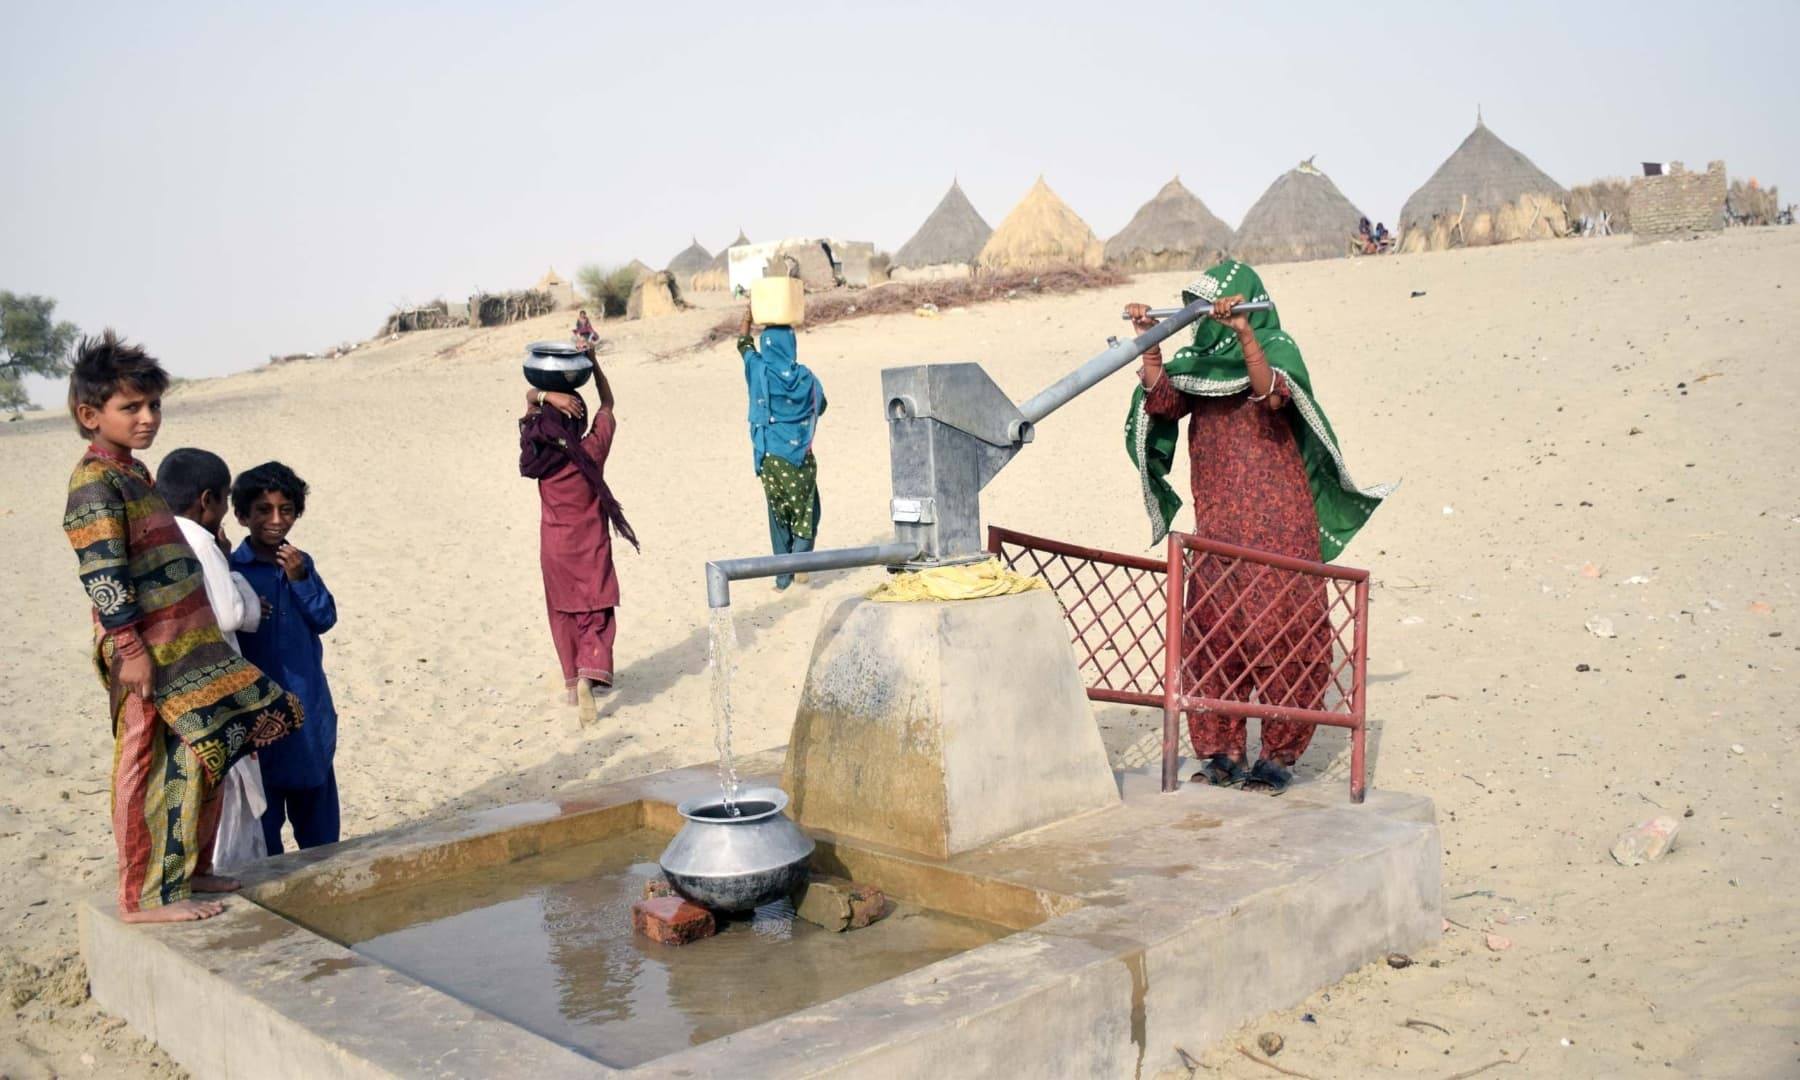 Women and children fetch water from a well in Achhro Thar, Khipro, Sindh. — Photo by Umair Ali